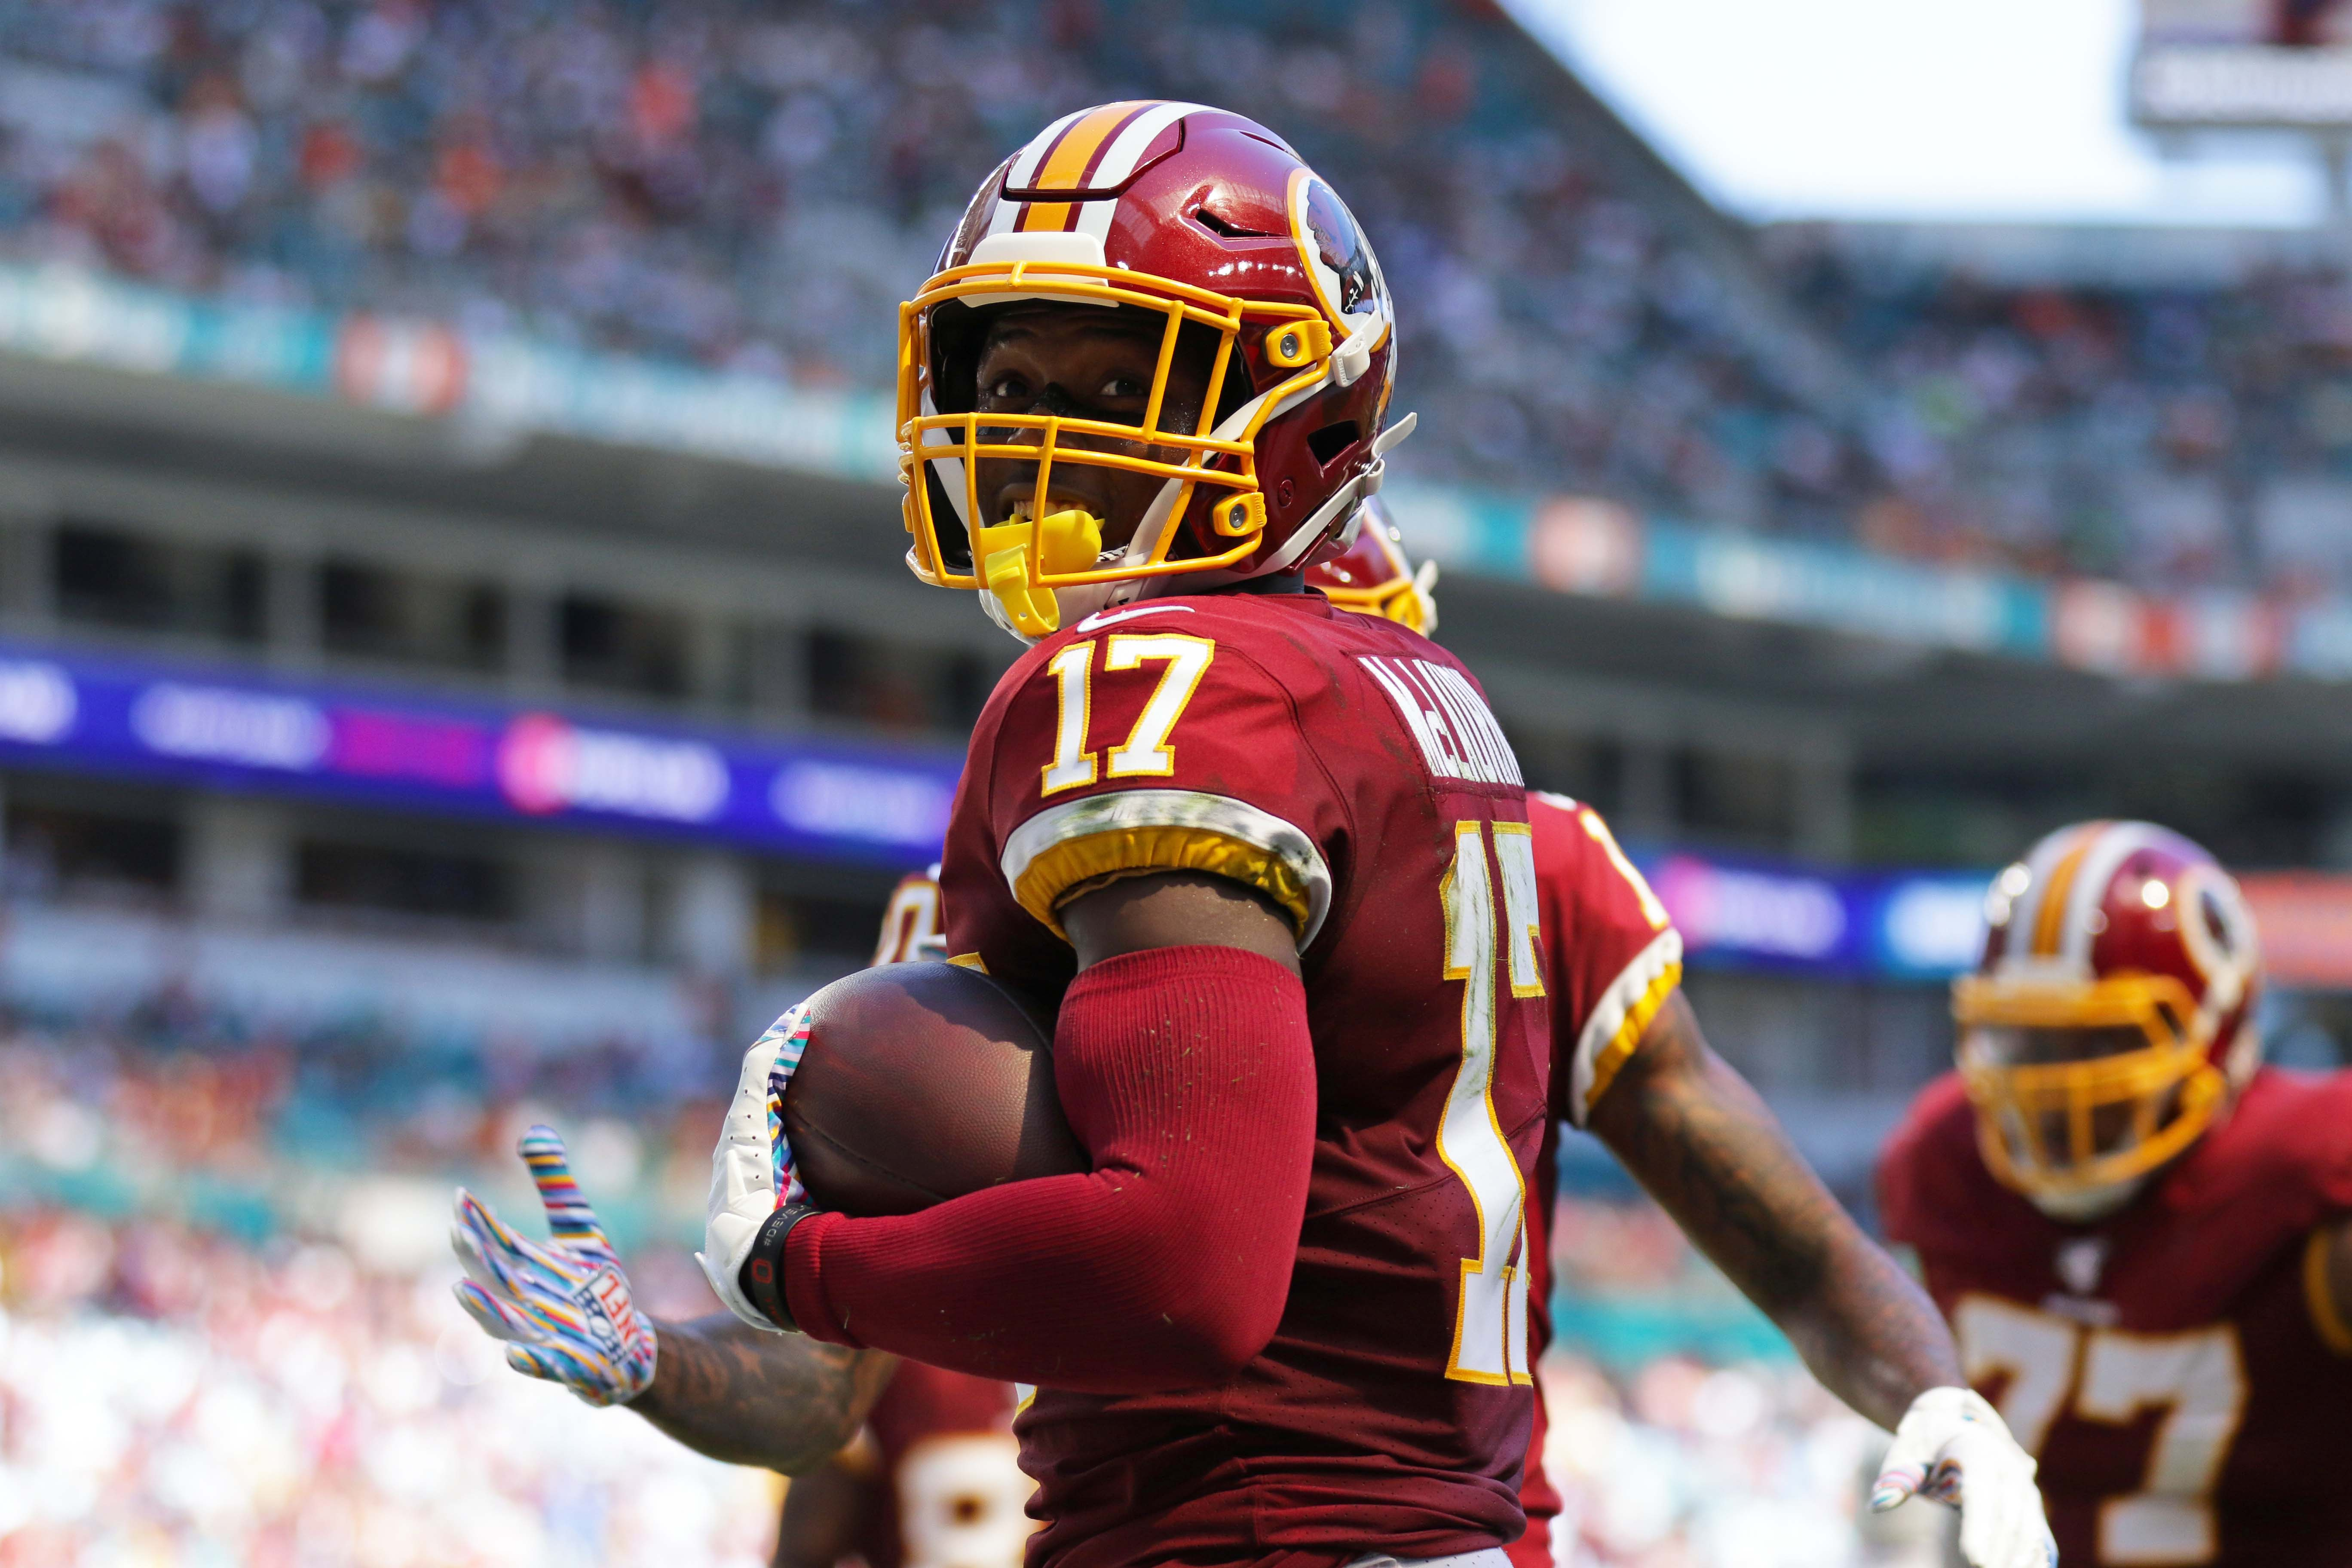 Watch: Terry McLaurin's 4th and 5th TDs, ensuing Kodak Black celebration